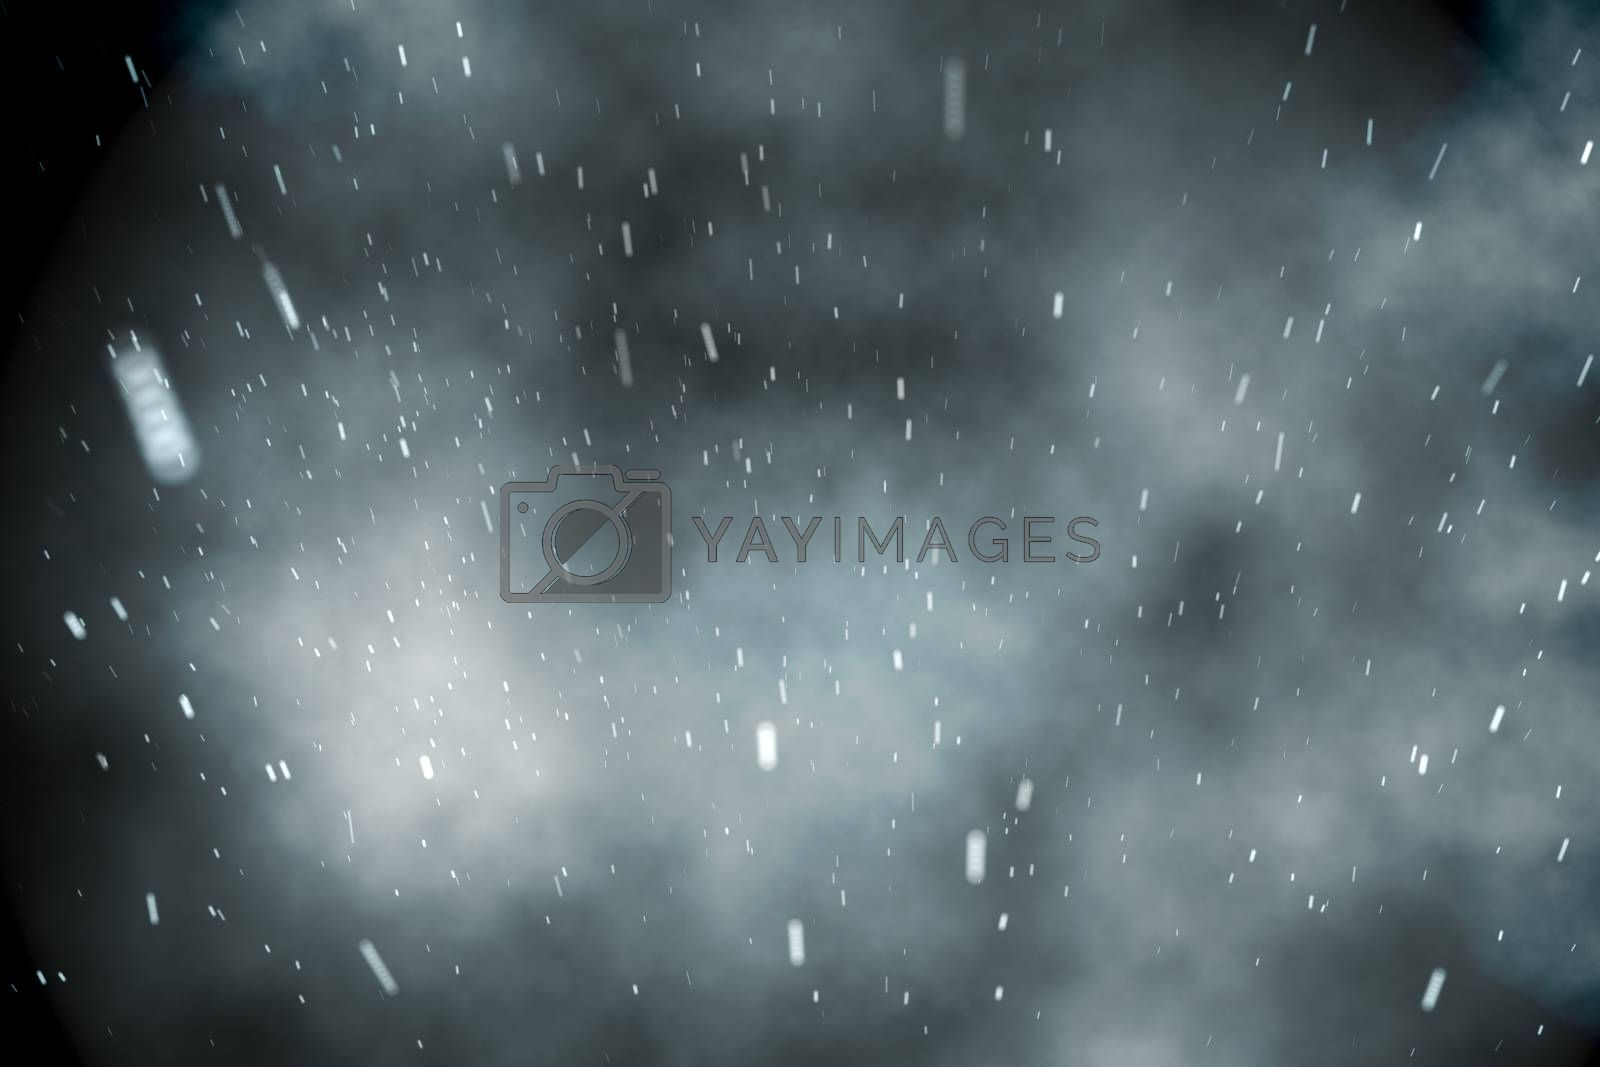 Royalty free image of Cloudy sky with snow falling by Wavebreakmedia